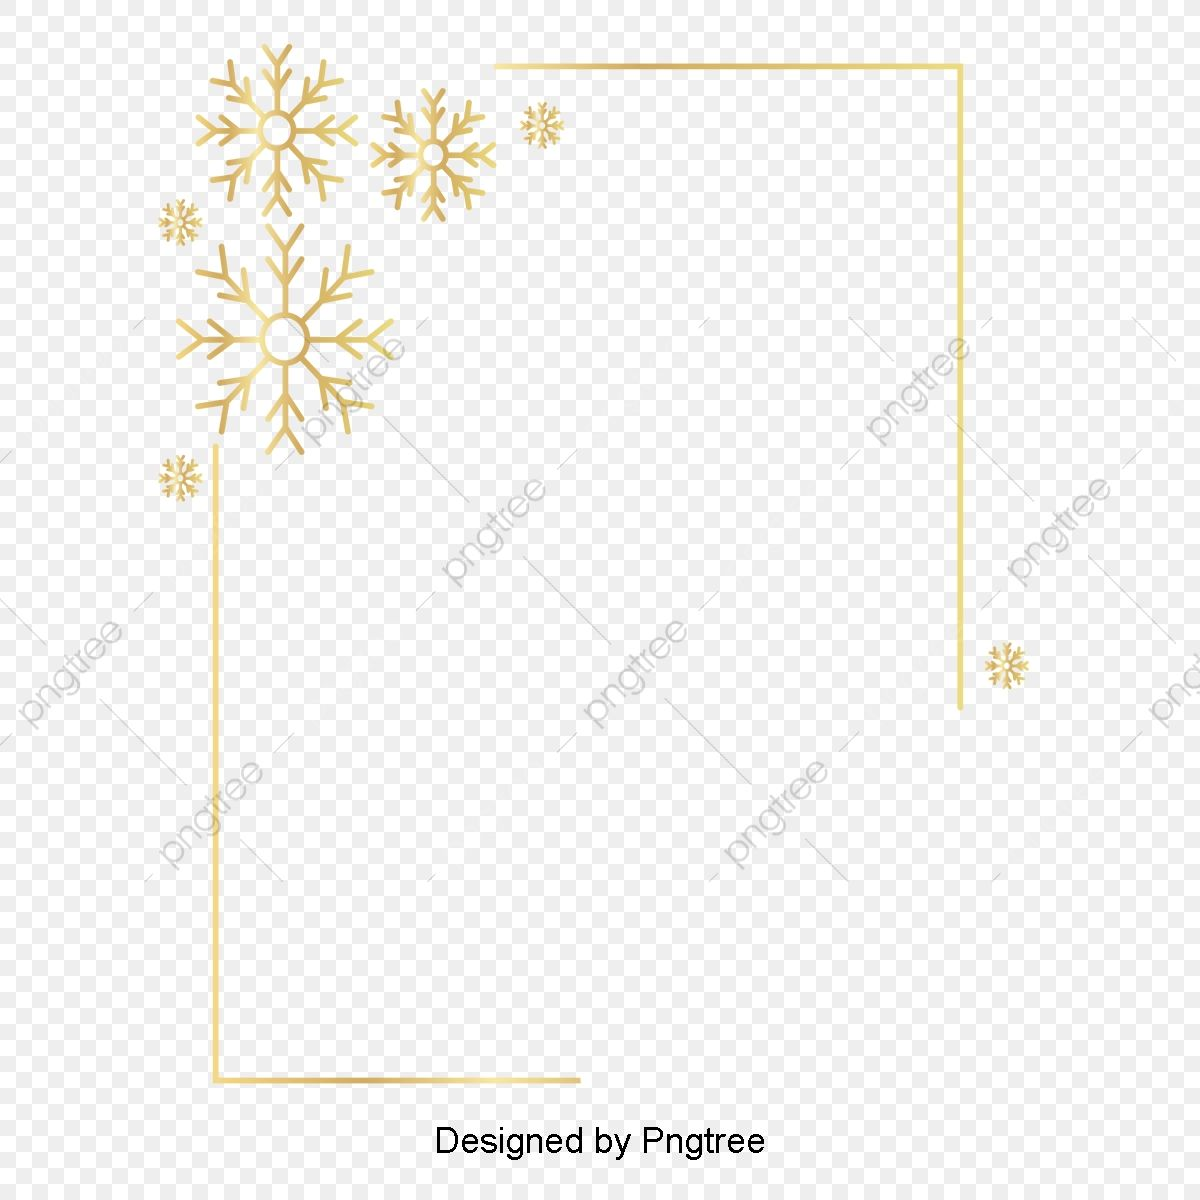 Not Only The Gold Christmas Frame Rectangle Clipart Frame Frames Png Transparent Clipart Image And Psd File For Free Download Christmas Frames Clip Art Gold Christmas